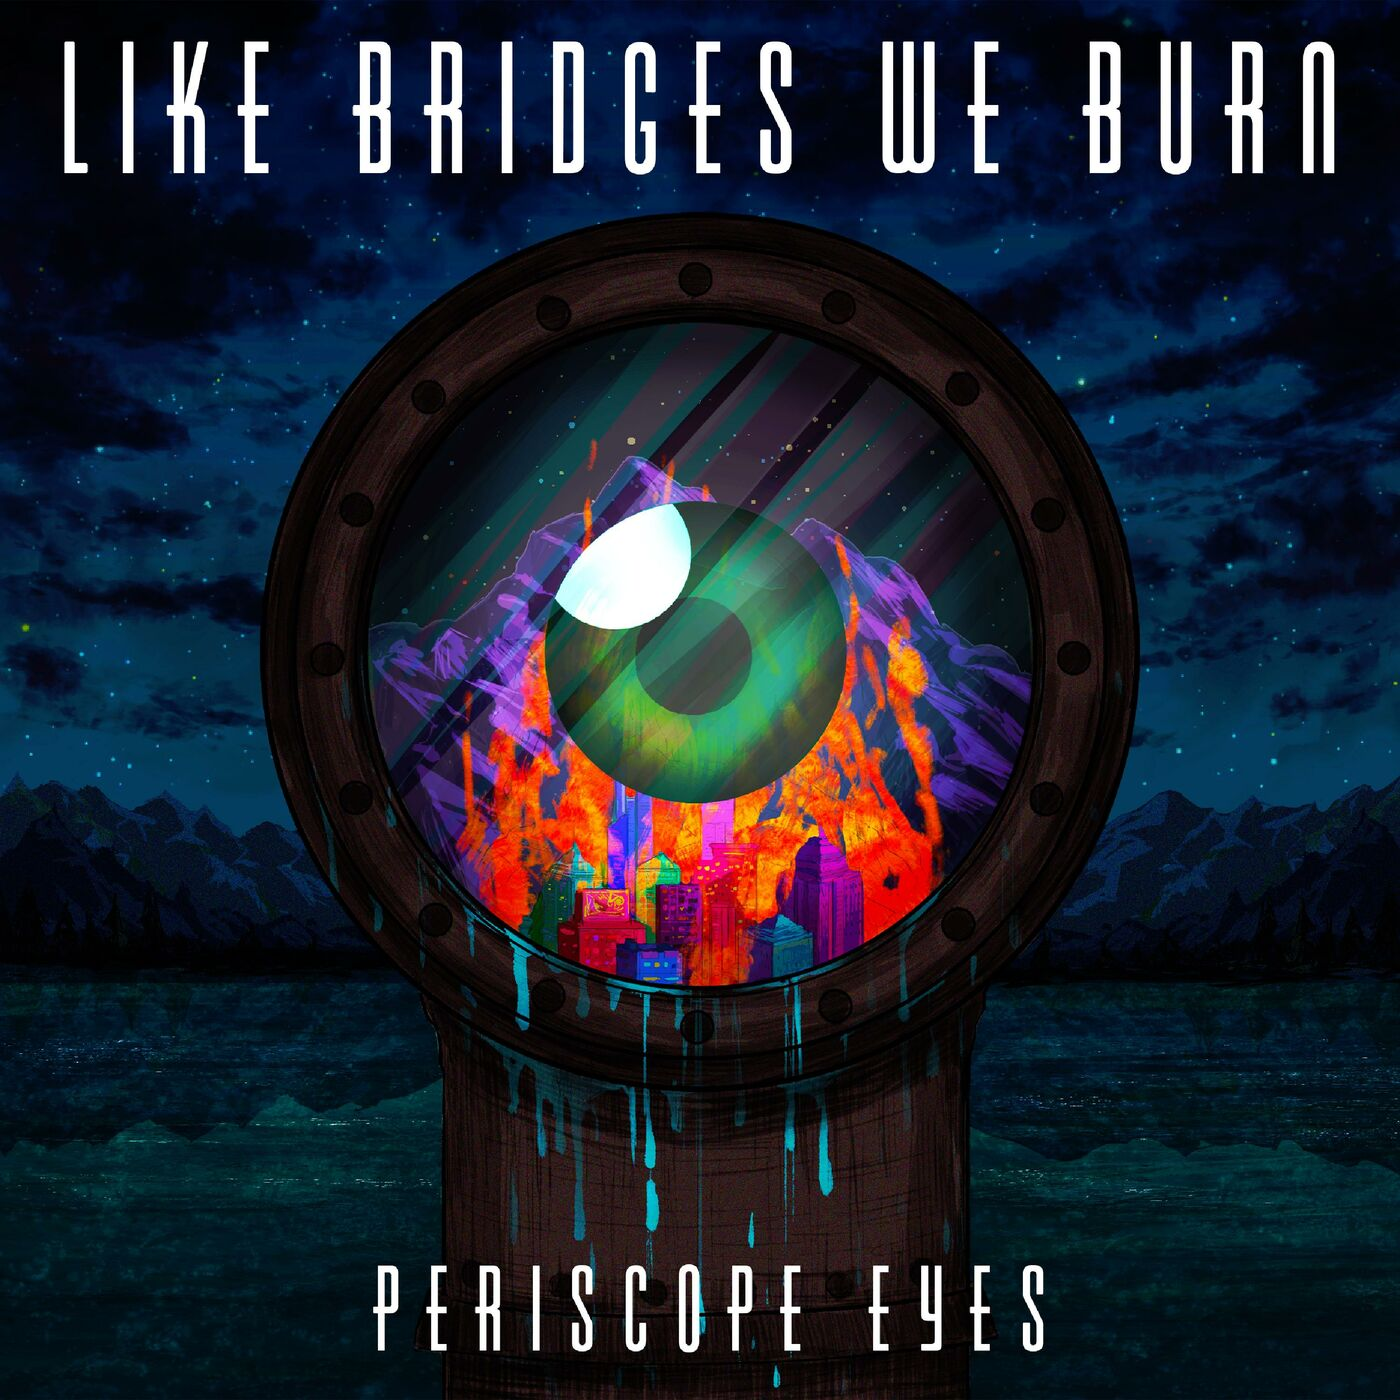 Like Bridges We Burn - Periscope Eyes [EP] (2020)